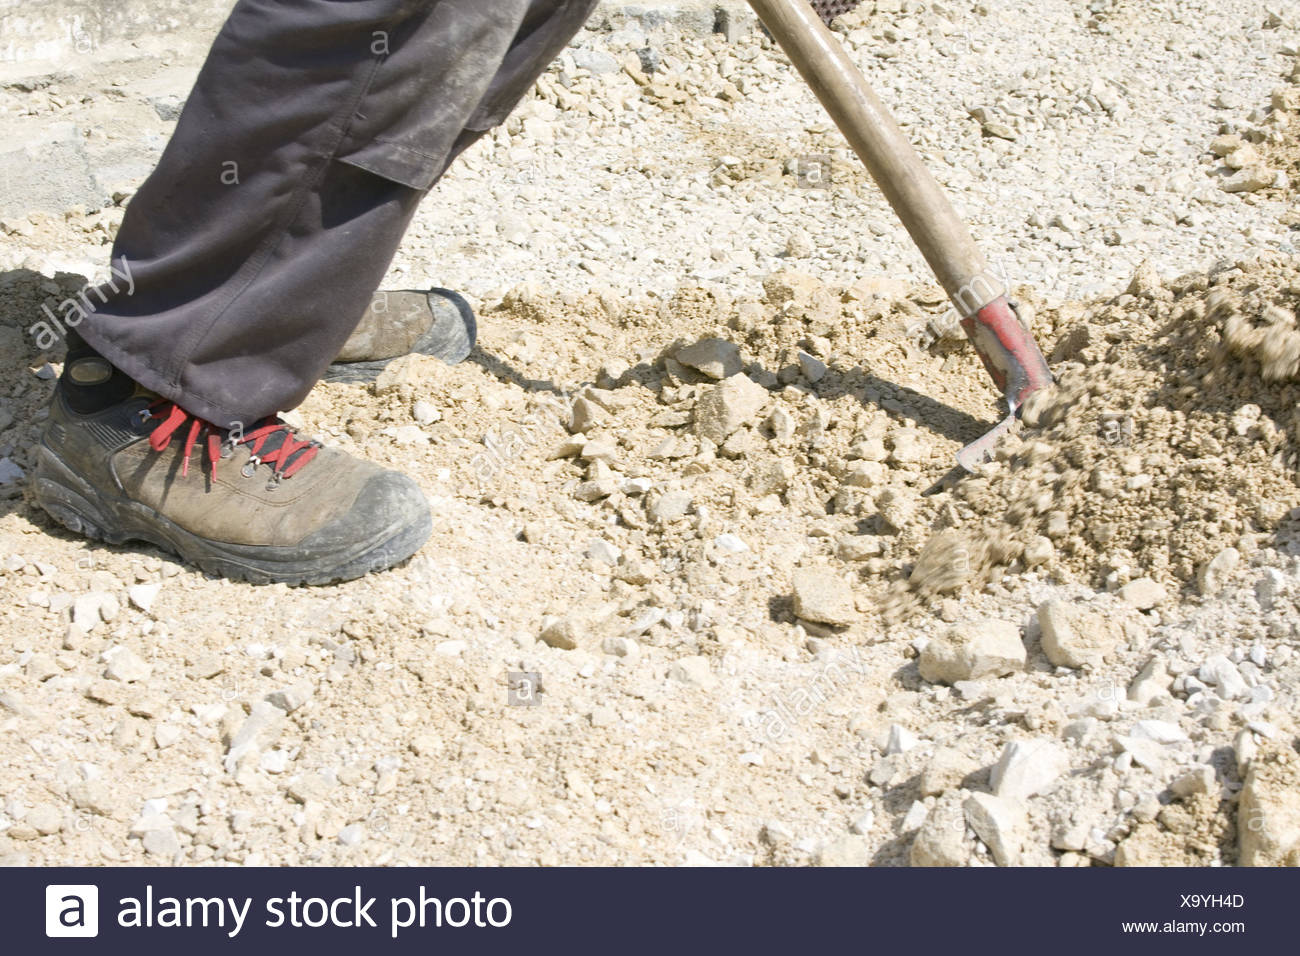 Craftsmen, shovel, gravel, grit, construction, man, men at work, worker, work, shovel shoes, detail, feet, working shoes, working trousers, dirtily, stony, gravel, stone, stones, strain, with difficulty, strenuous, outside, medium close-up, detail, - Stock Image